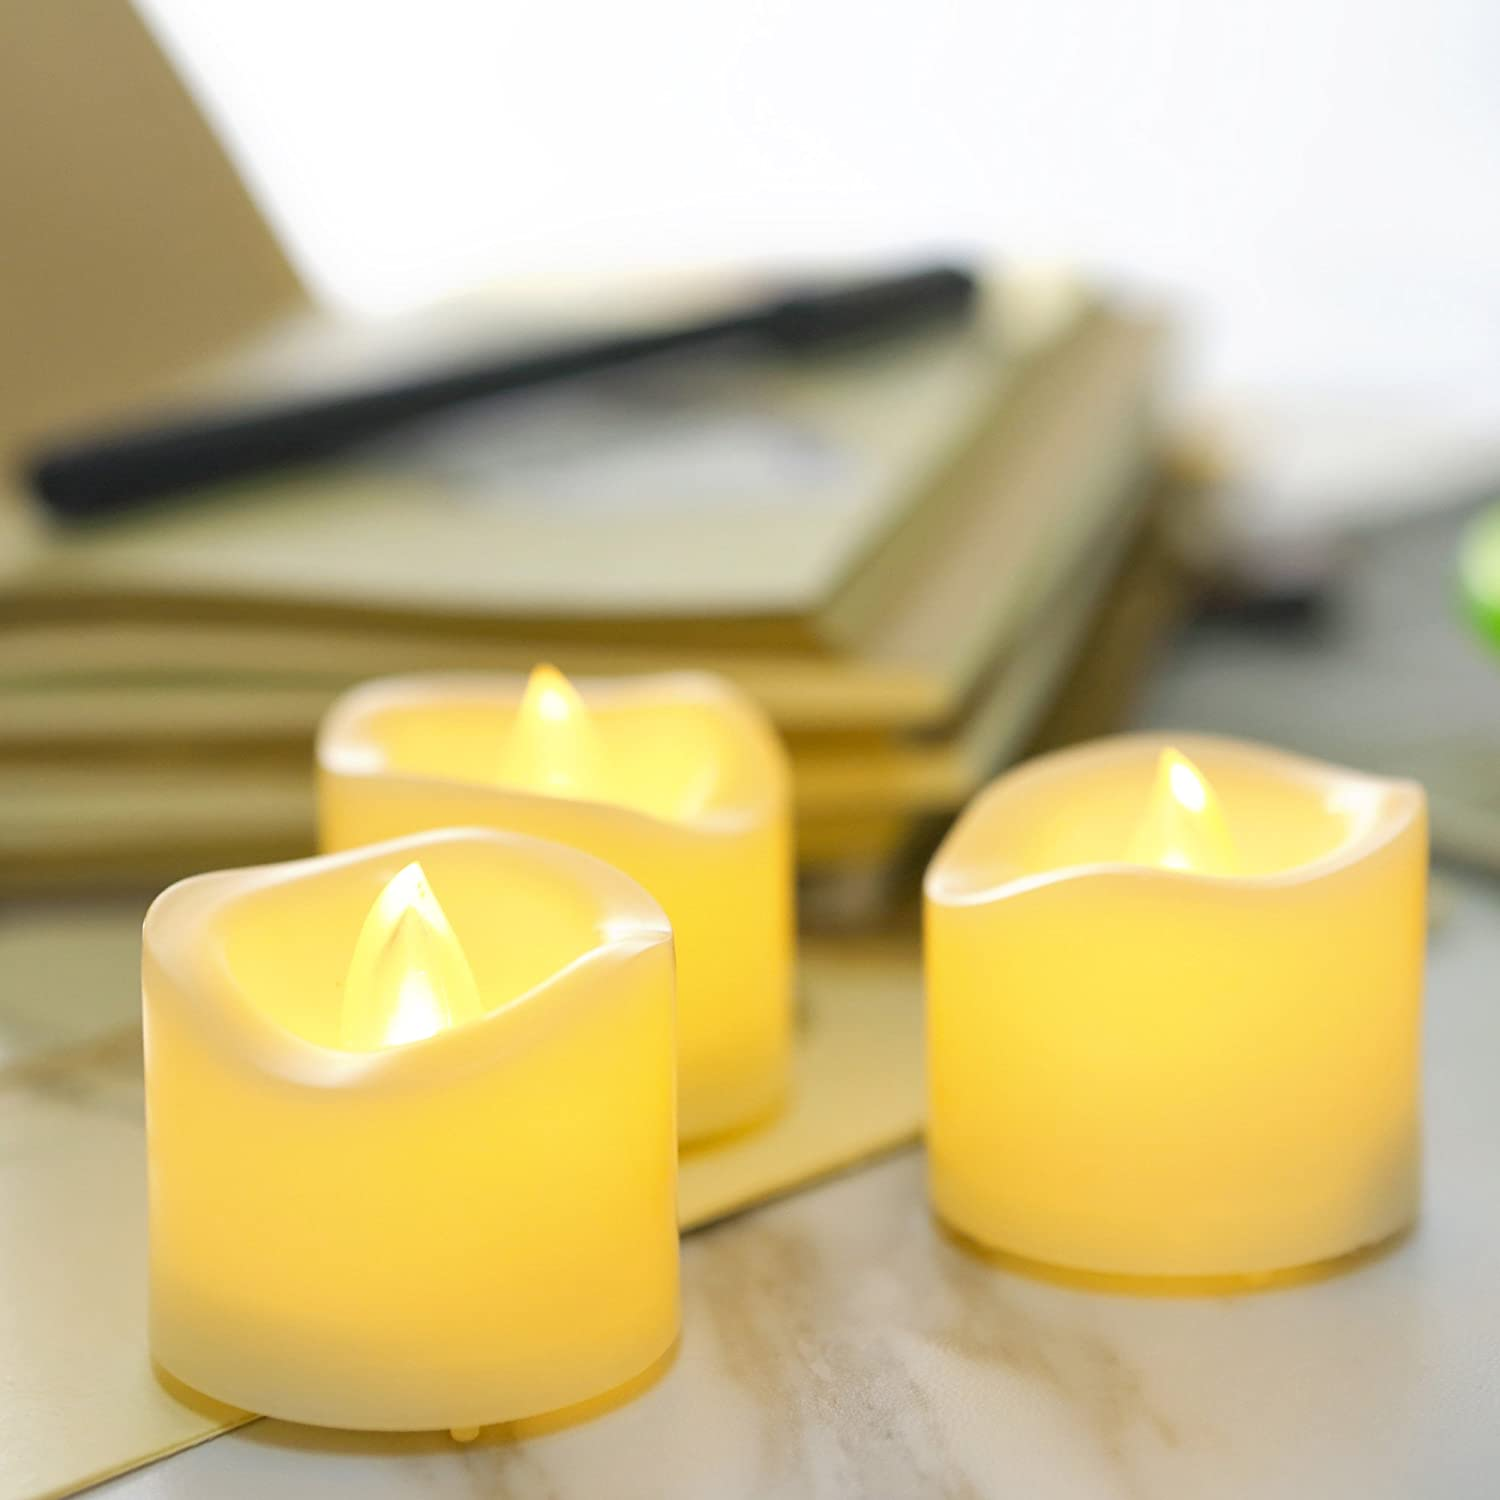 1.5x2 12 Pack Battery Incl. Battery Operated Flameless Votive Candles with Drips Flickering Realistic Electric LED Votives Tea Lights for Home Wedding Party Festivals Decorations Supplies